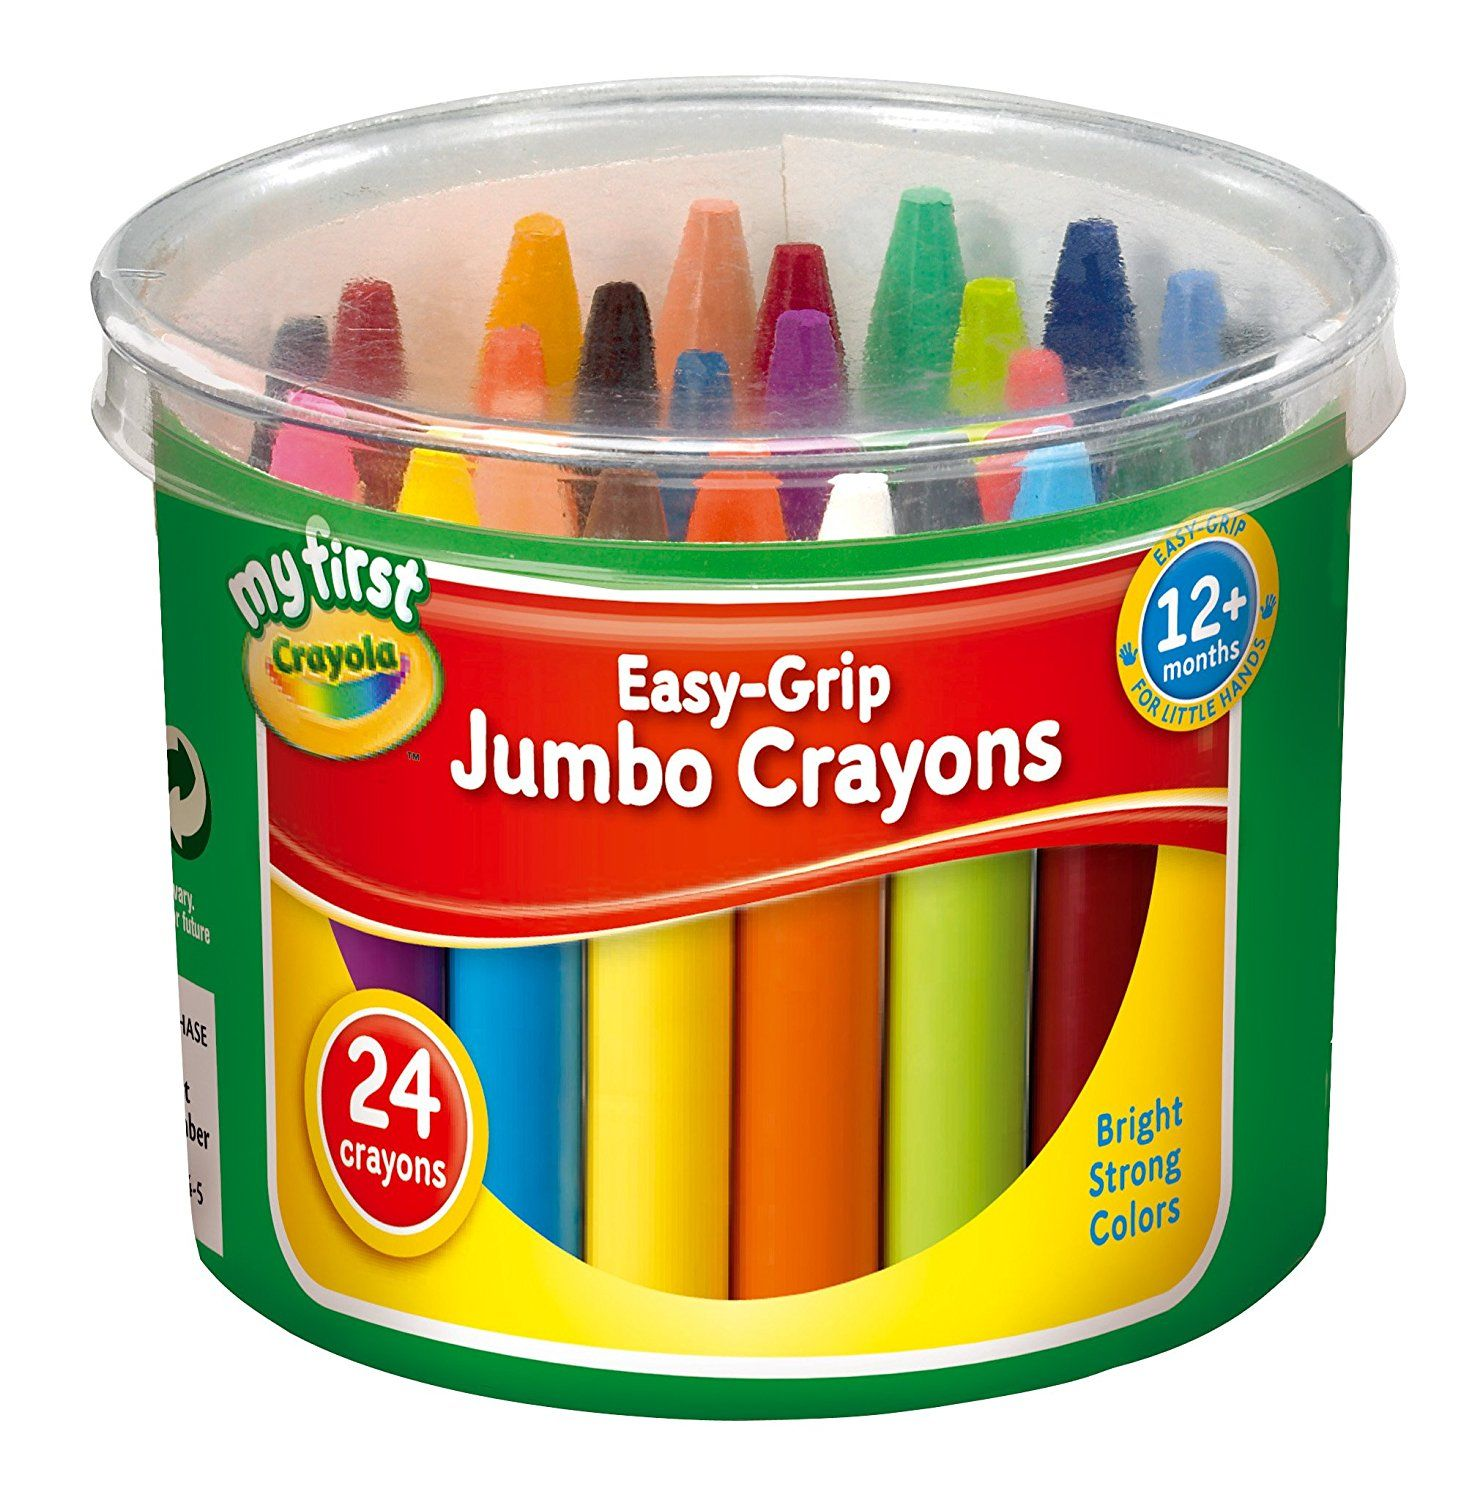 Why Not To Buy Jumbo Crayons For Your Child What Parents Should